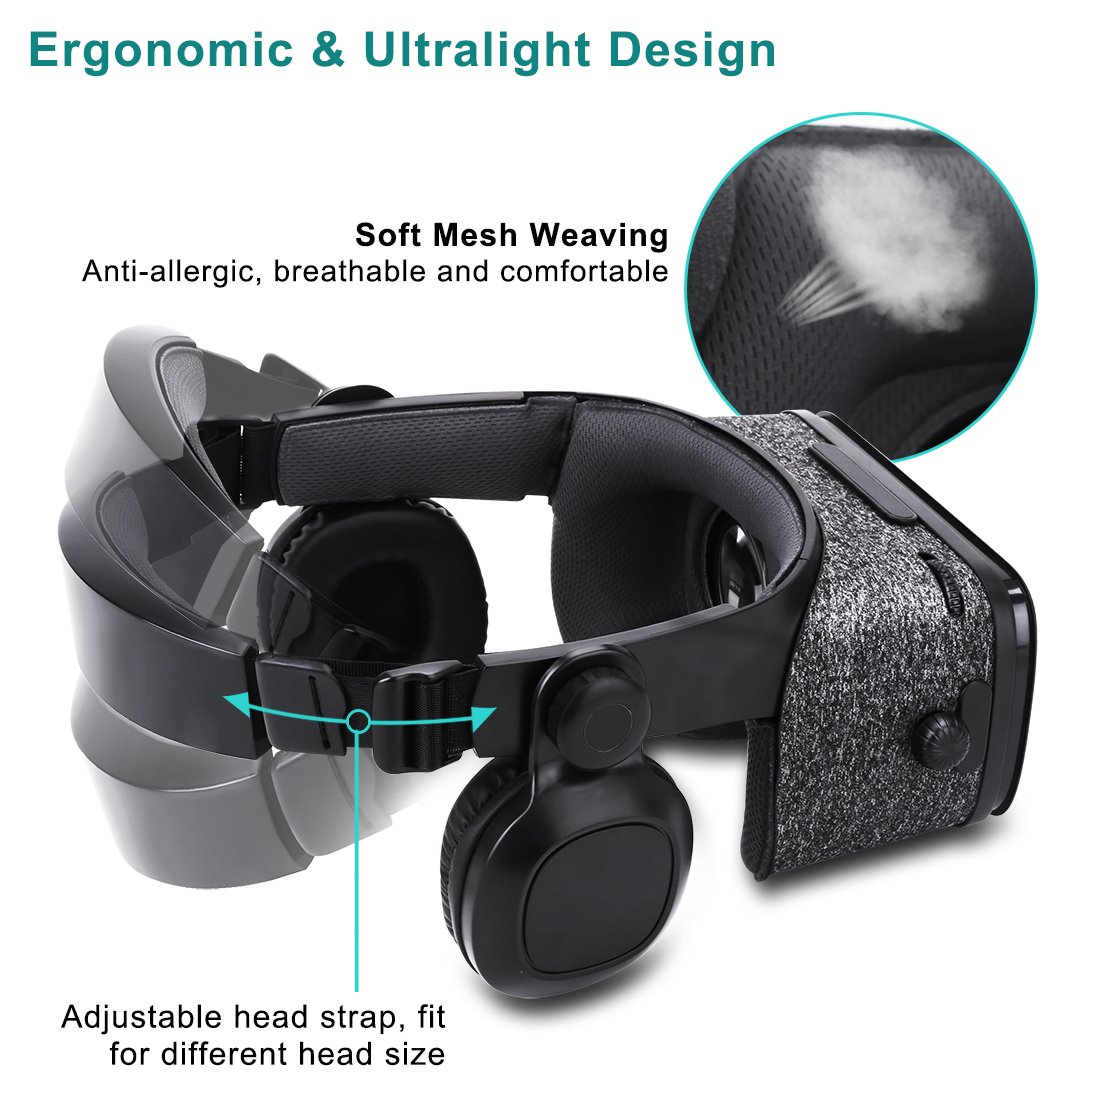 Ultralight Virtual Reality Headset with Stereo Headphones, 3D VR Glasses for VR games & 3D Movies, Comfortable & Immersive Experience VR Goggles for 4.7 - 6 inch IOS/Android Smartphones by geek-2016 (Image #6)